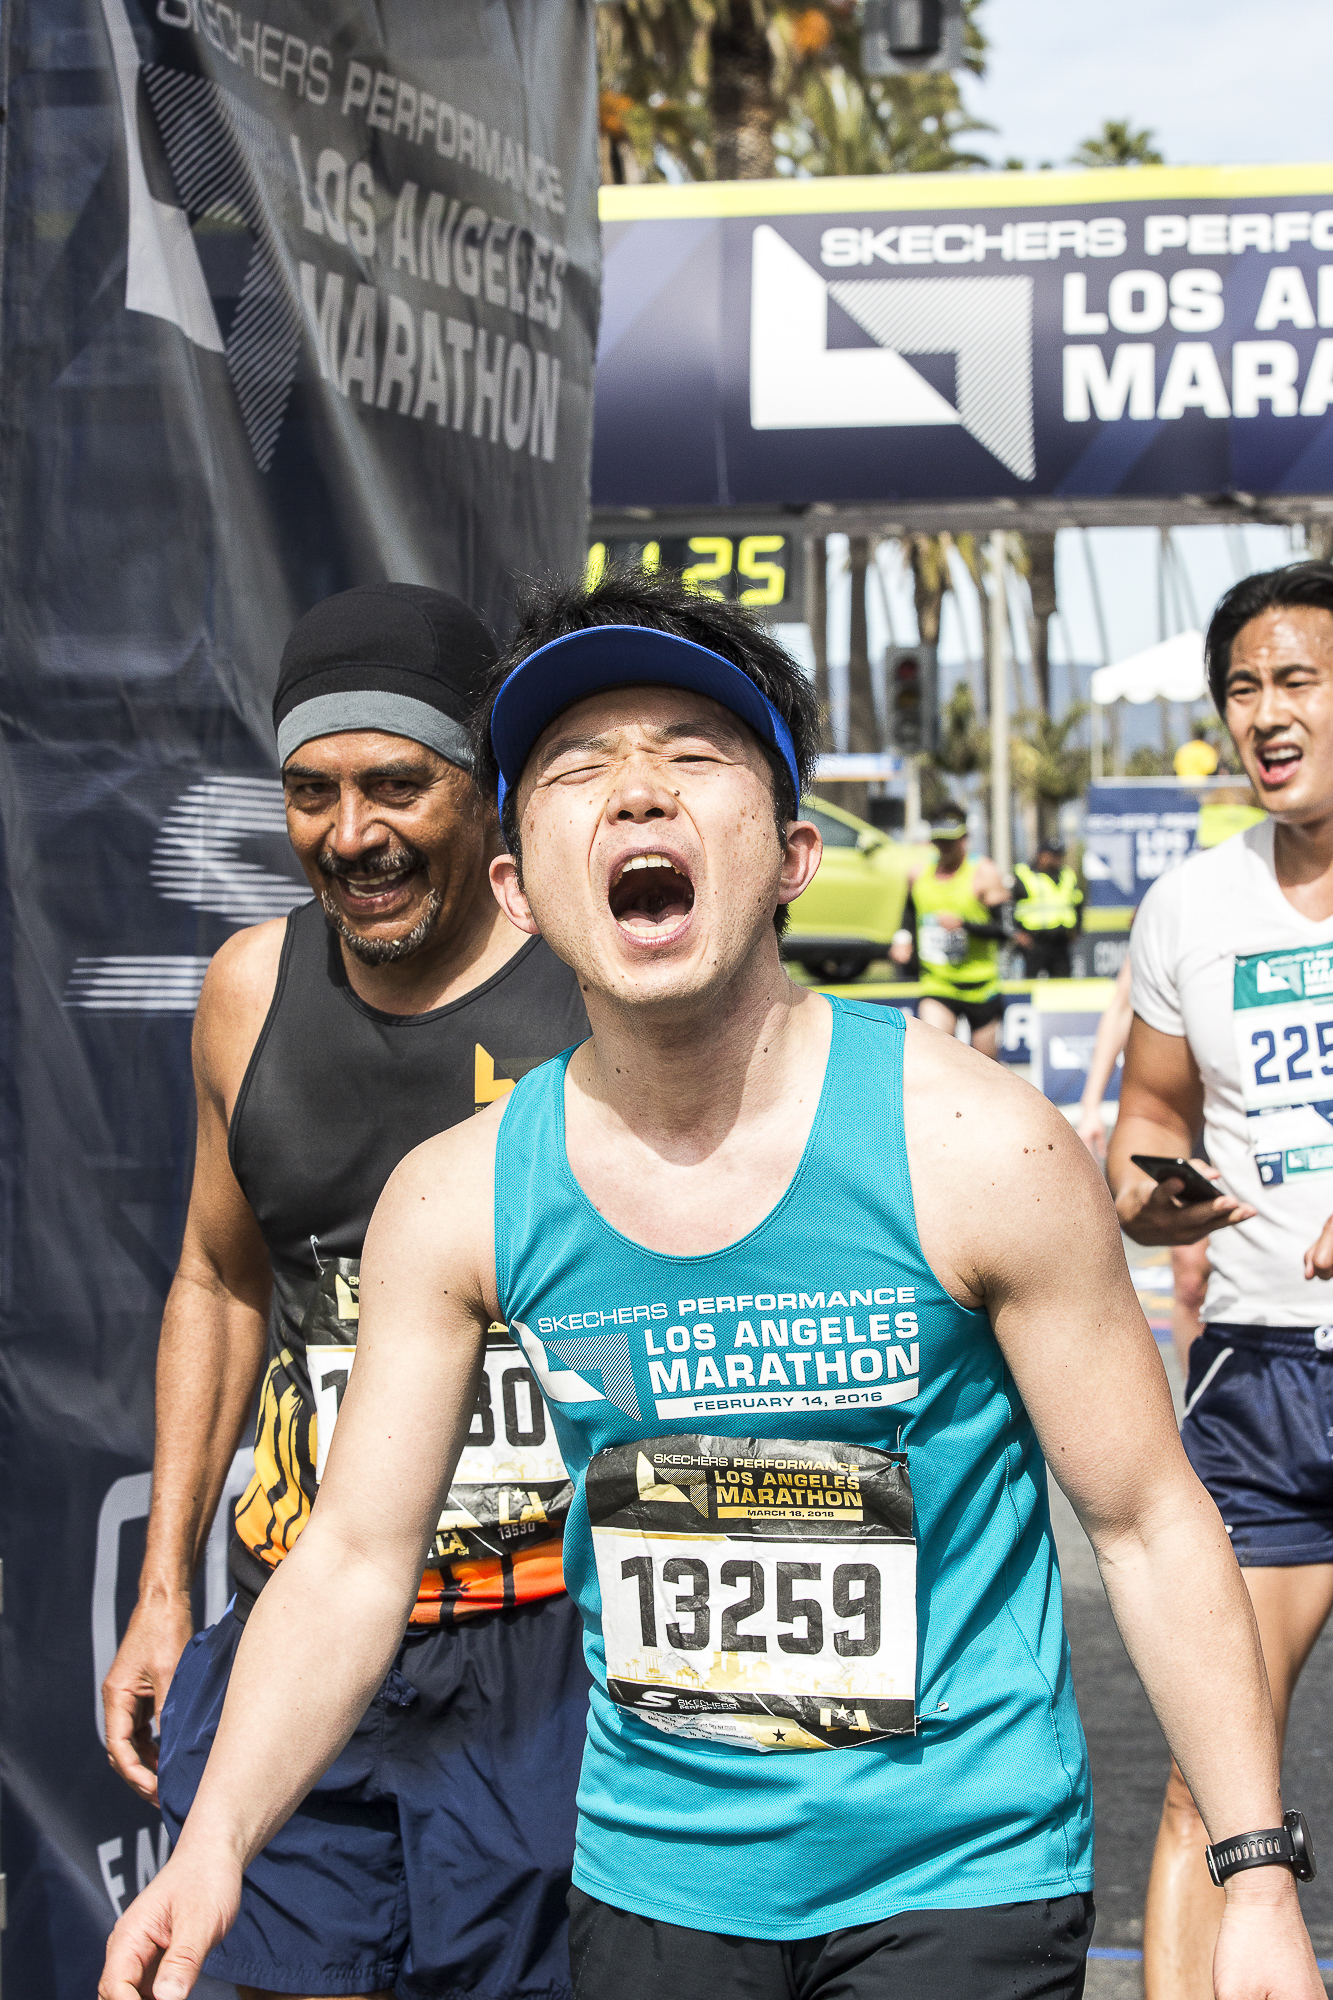 """Toshihiko Tateshita (bib #13259) (center) screams with joy after completing the 33rd annual Los Angeles Marathon event with a final time of 3:52:36 in Santa Monica, California on Sunday March 18, 2018. """"I did it…I finally did it! And no one can take that away from me!"""" Tateshita loudly stated. (Matthew Martin/Corsair Photo)"""